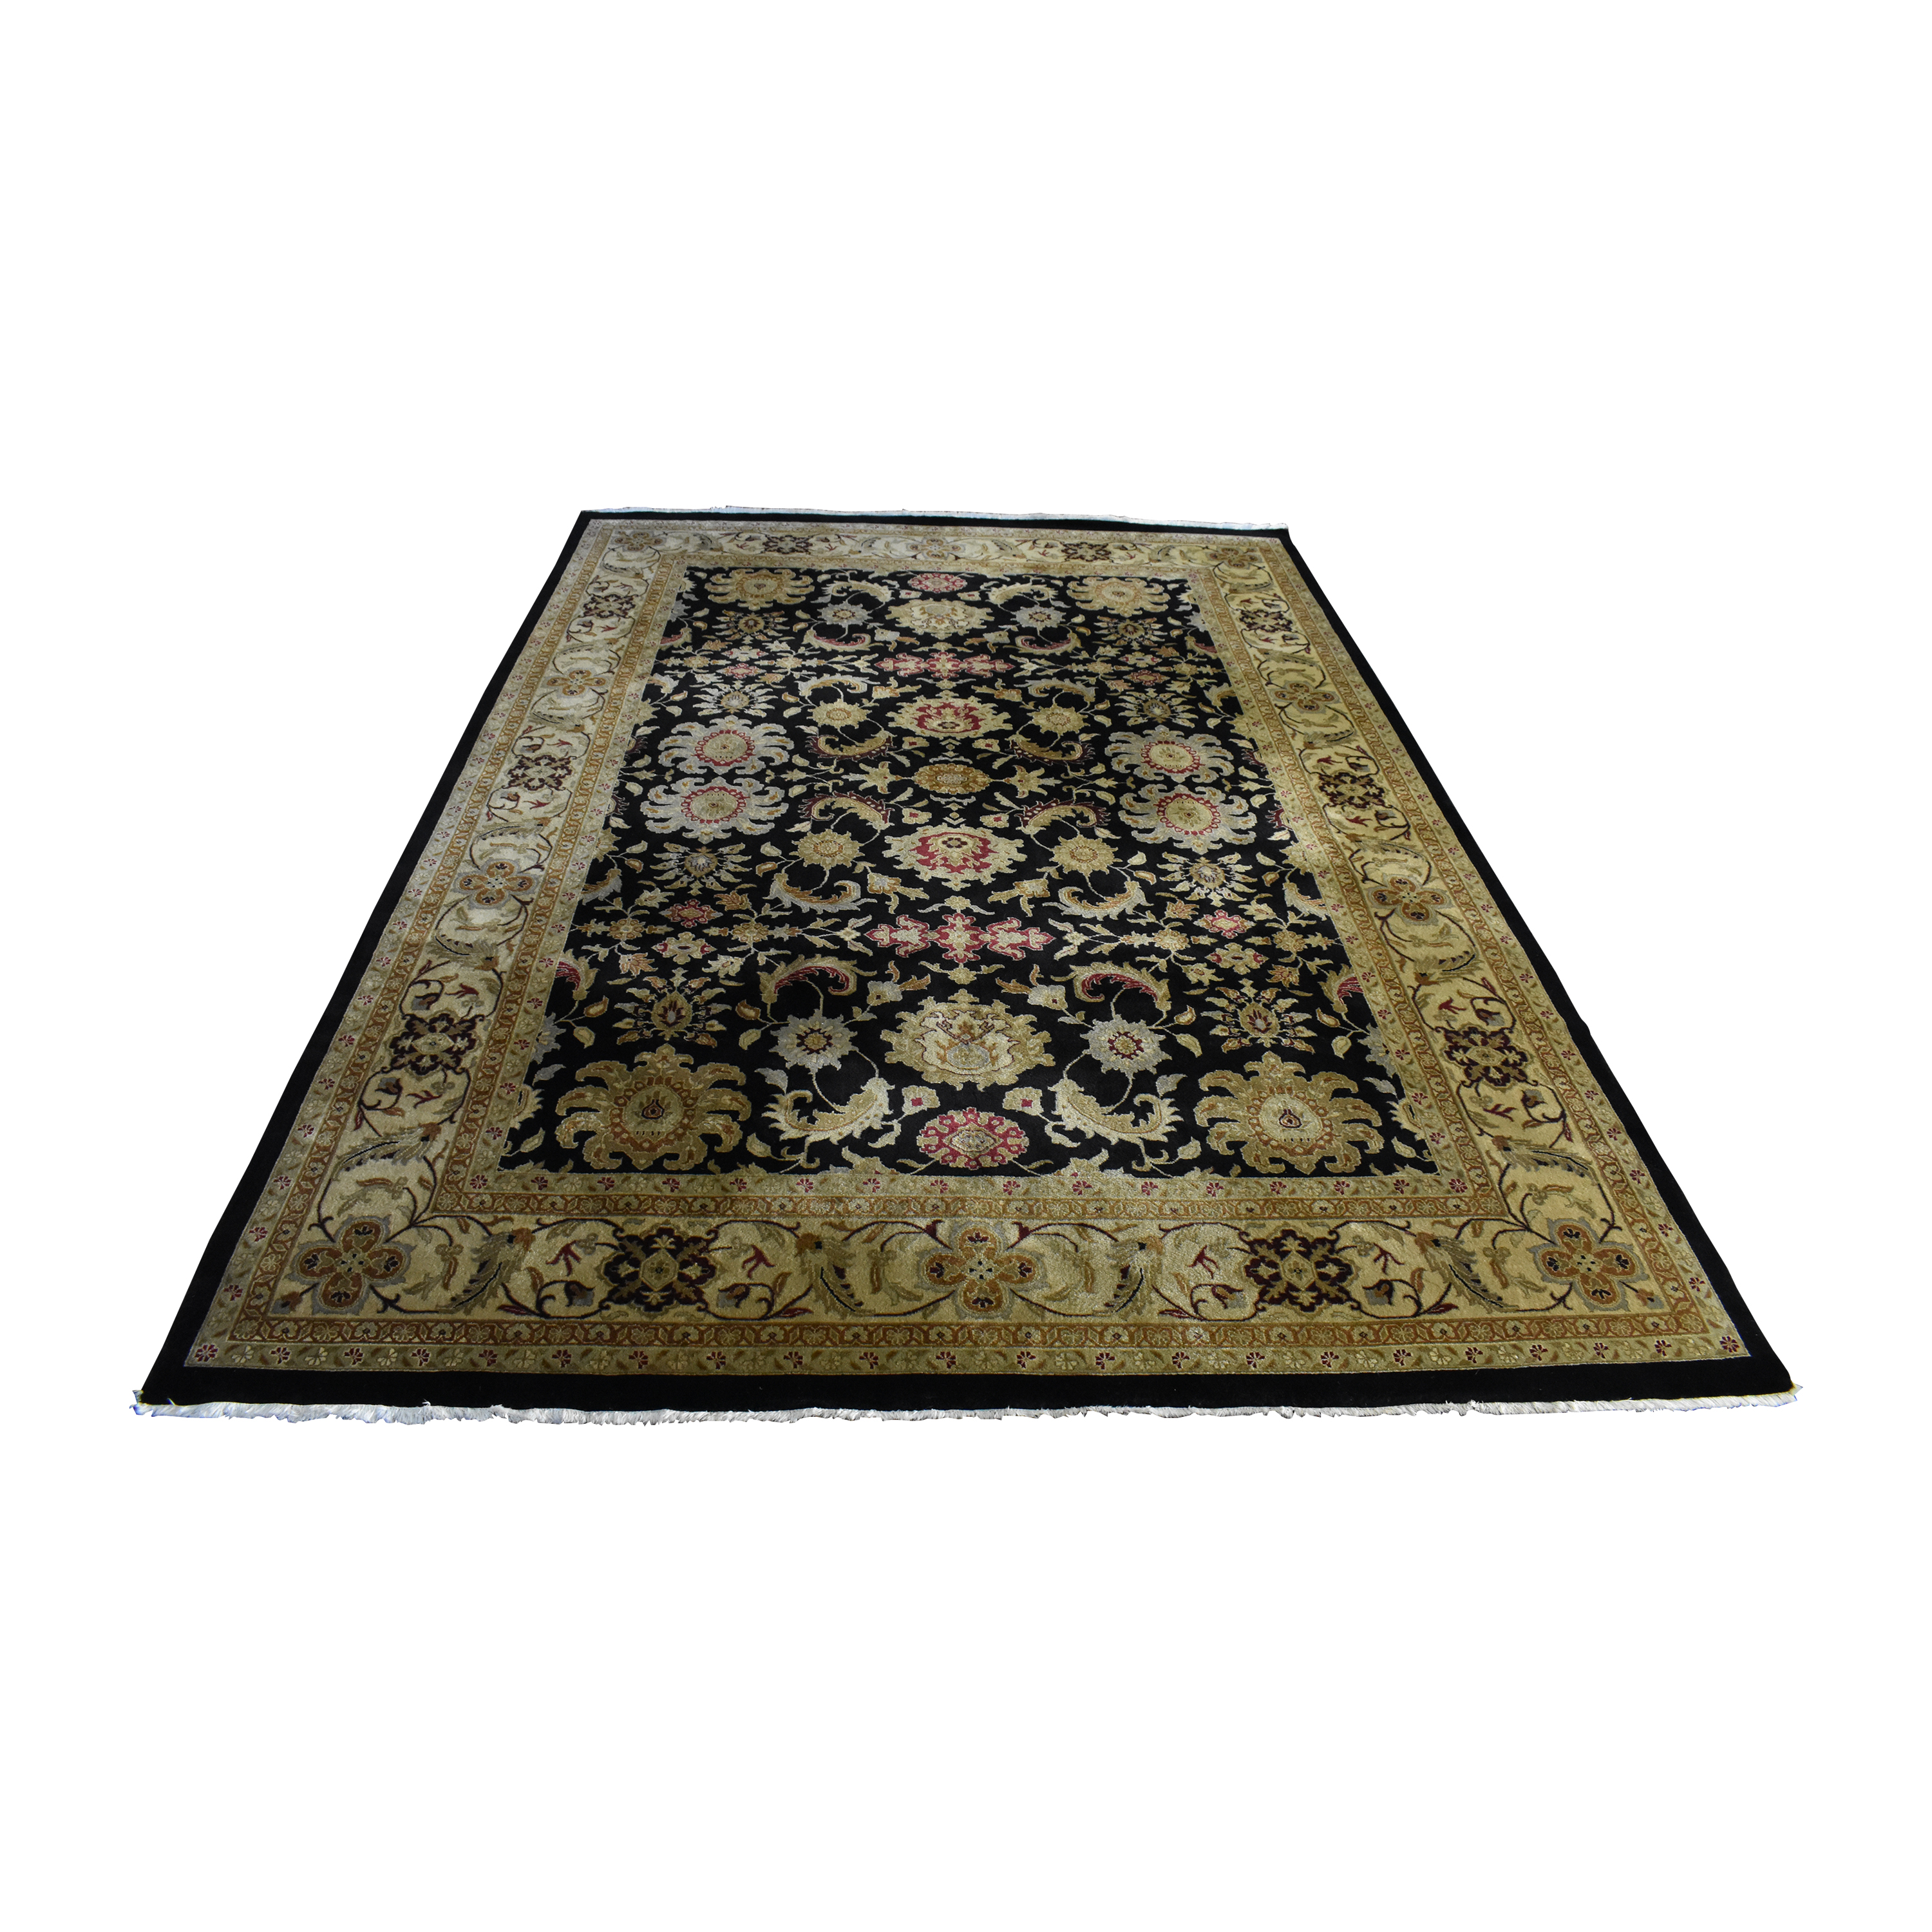 Ethan Allen Ethan Allen Ziegler Area Rug on sale